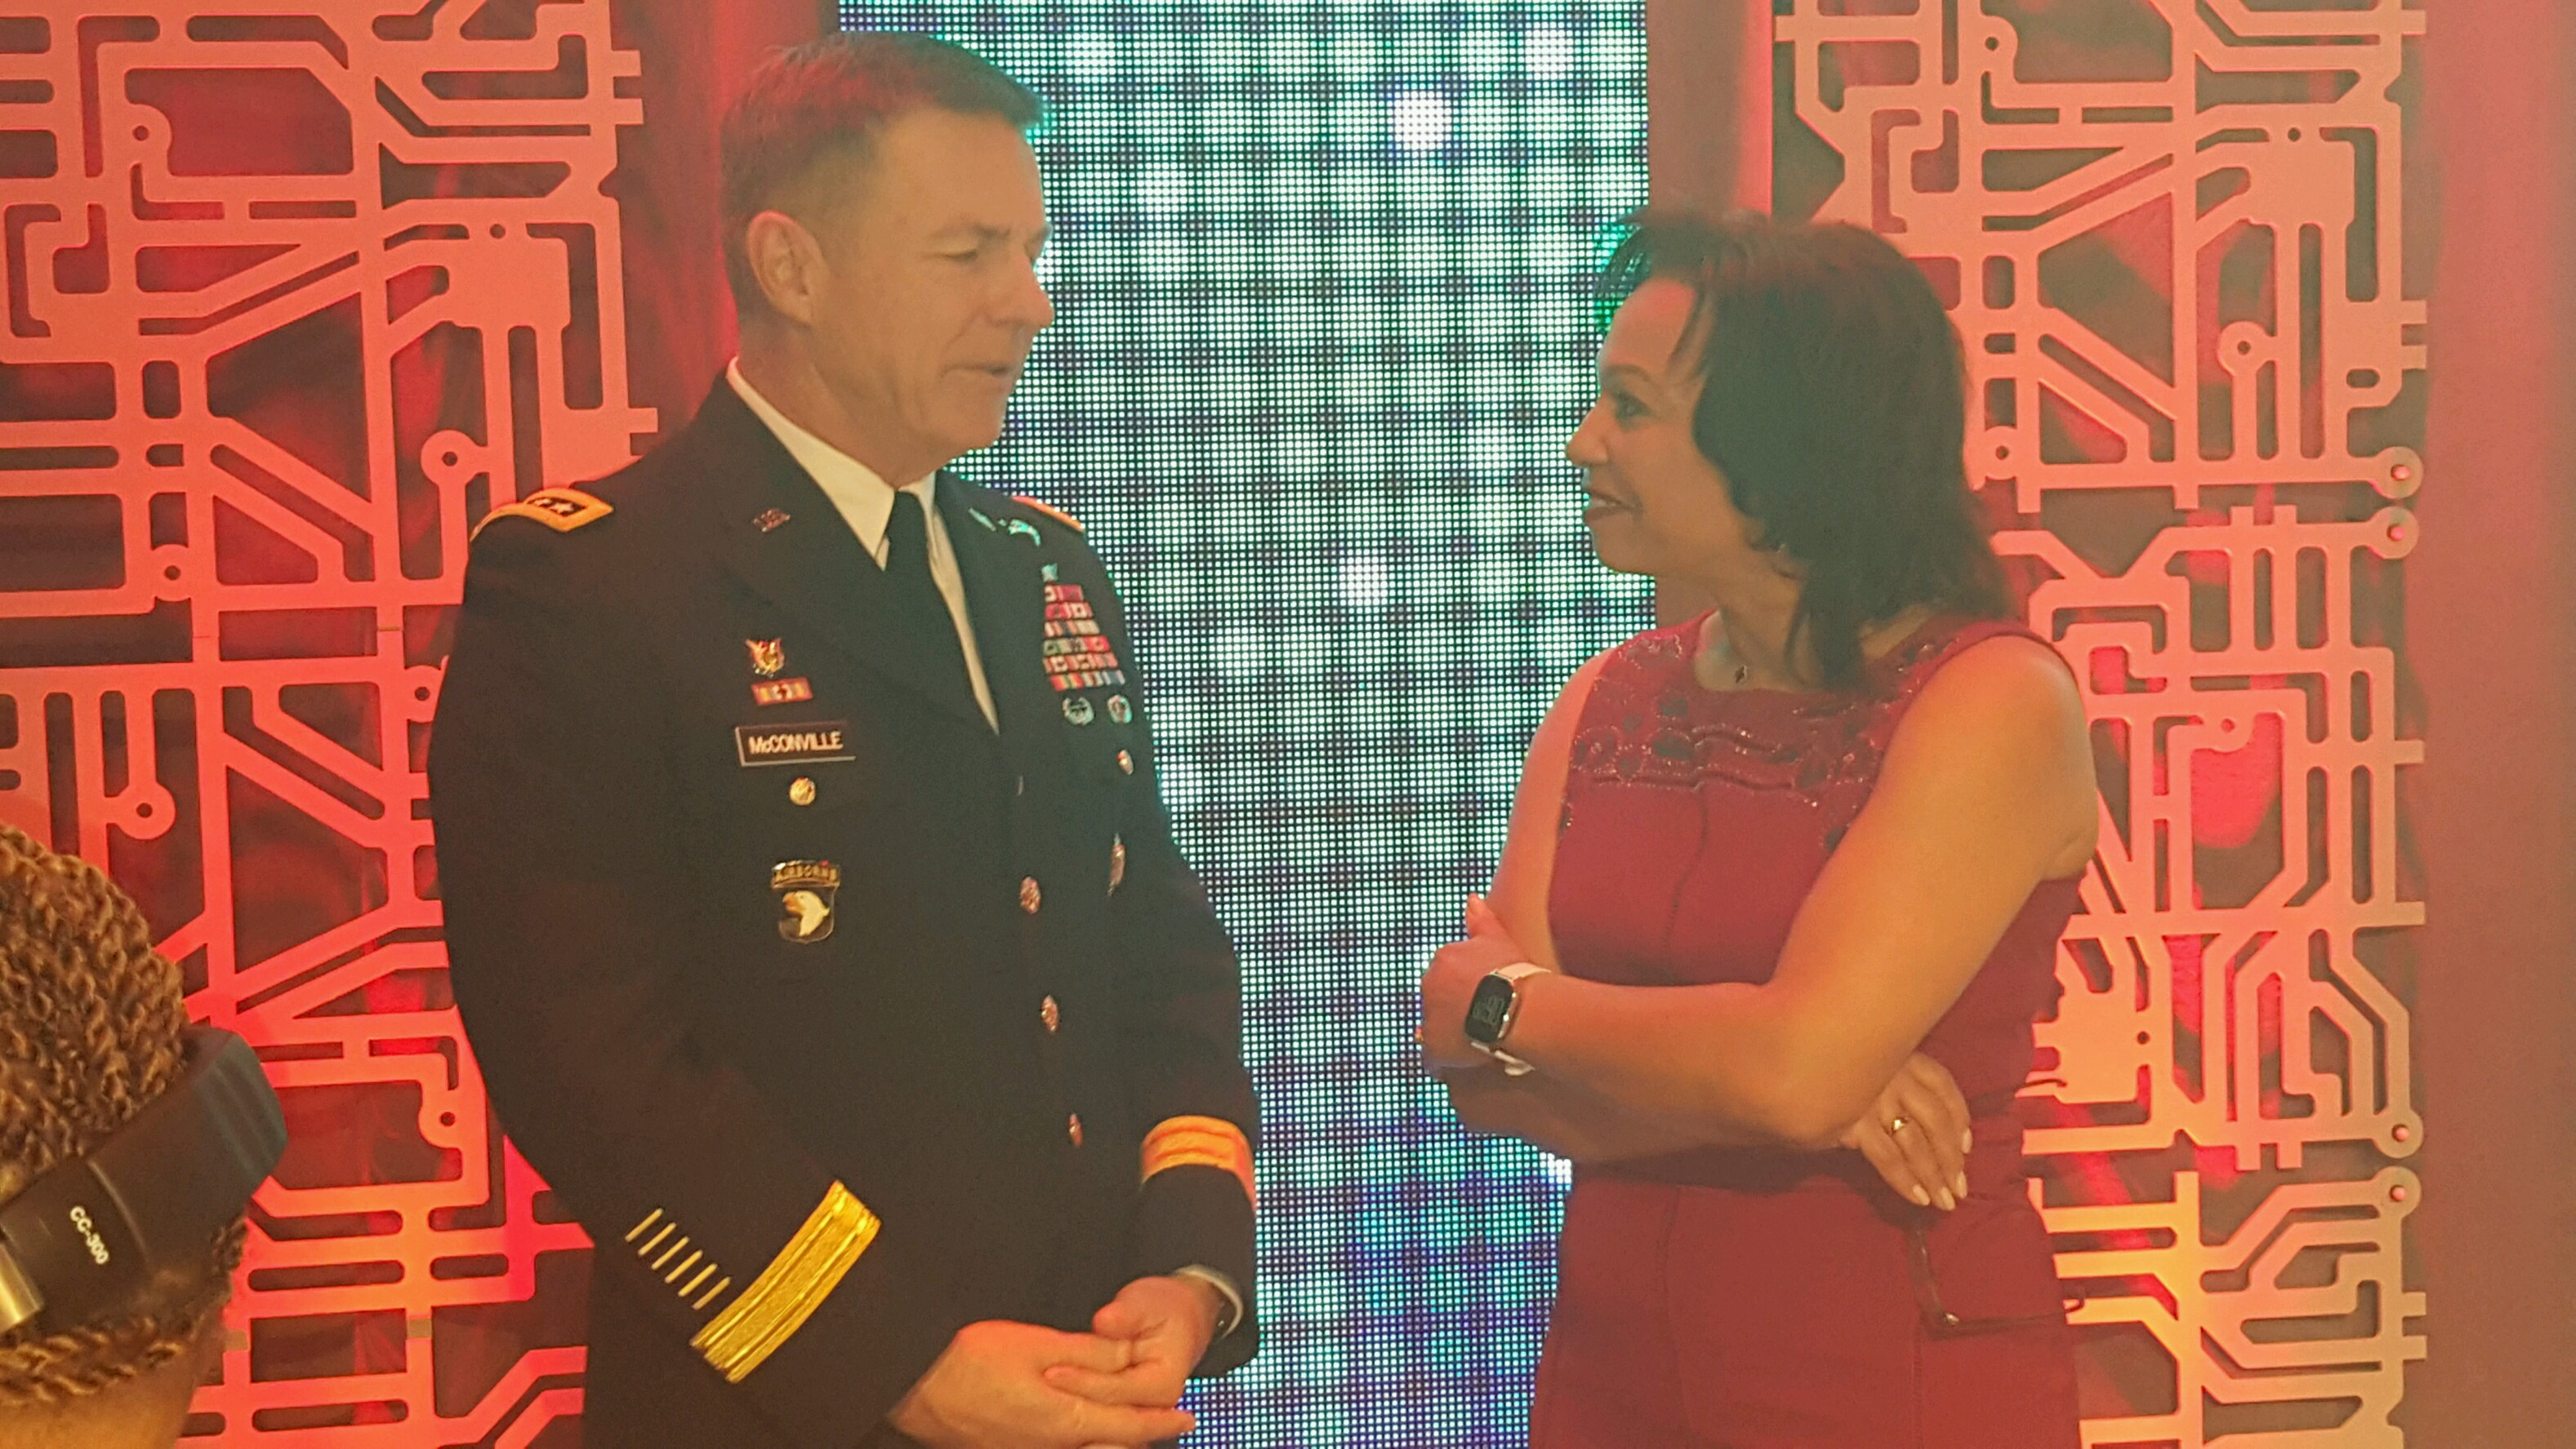 ABC7's Veronica Johnson honors U.S. Army engineers at the Black Engineer of the Year (BEYA) Stars & Stripes Award Dinner on February 9, 2018, in Washington, D.C. (ABC7)